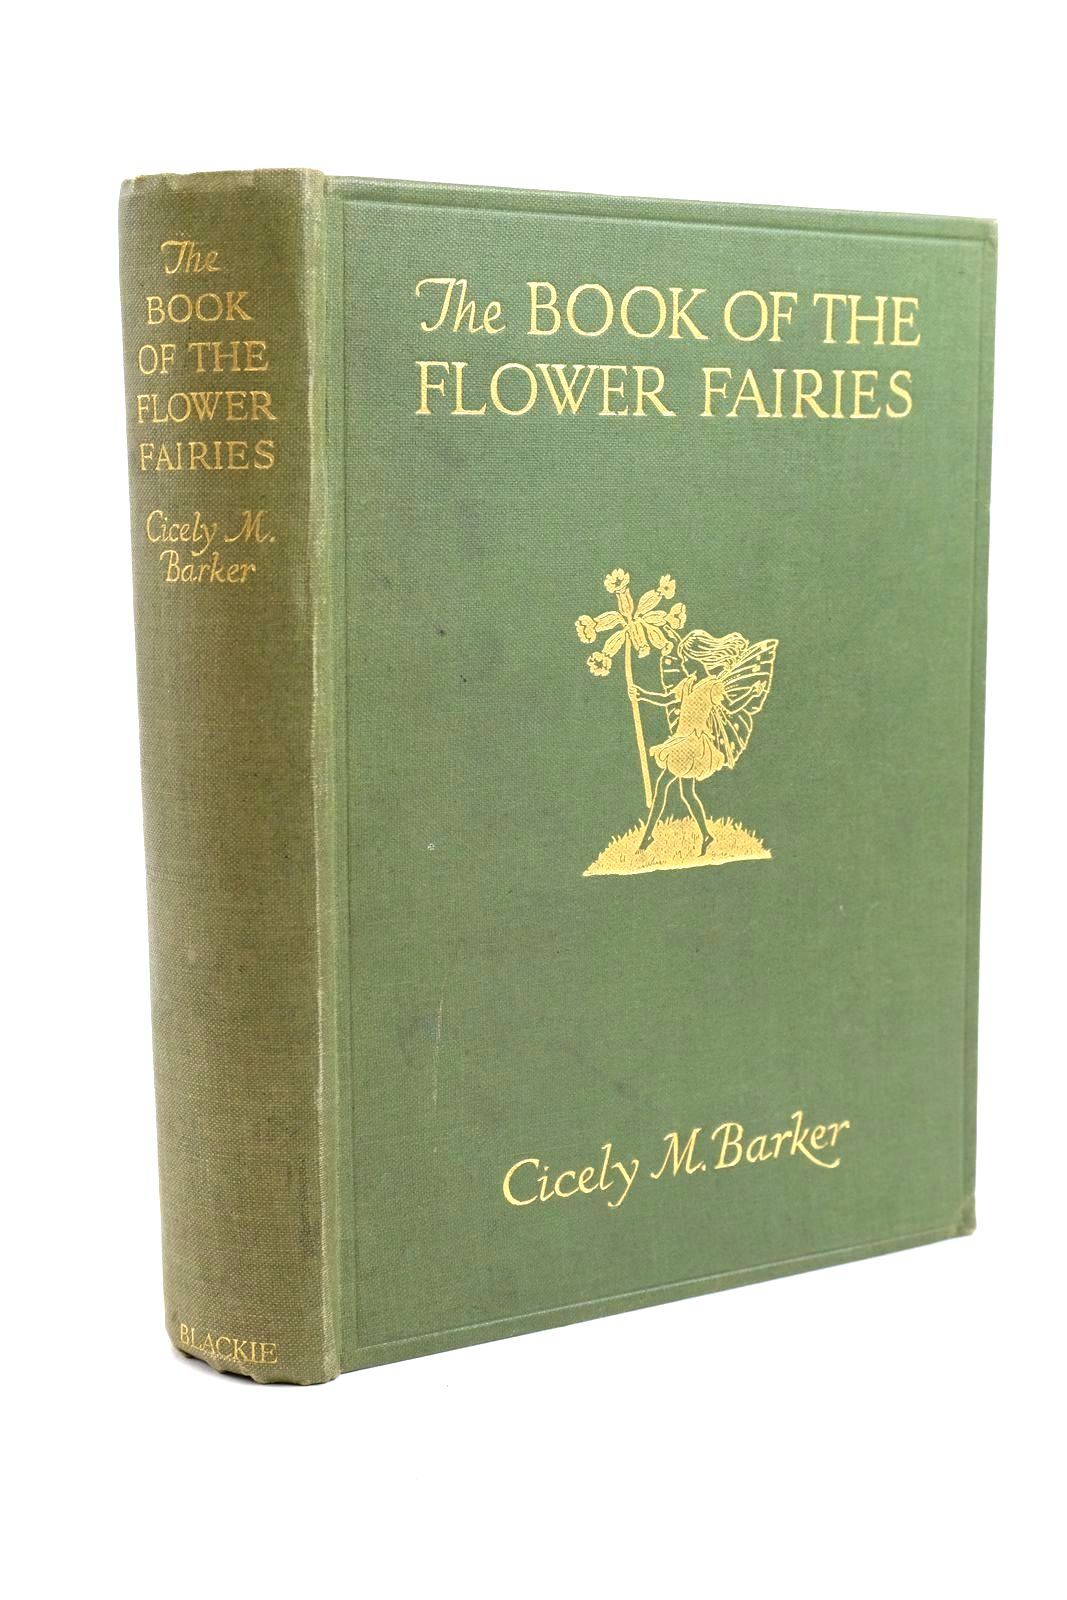 Photo of THE BOOK OF THE FLOWER FAIRIES written by Barker, Cicely Mary illustrated by Barker, Cicely Mary published by Blackie & Son Ltd. (STOCK CODE: 1321639)  for sale by Stella & Rose's Books